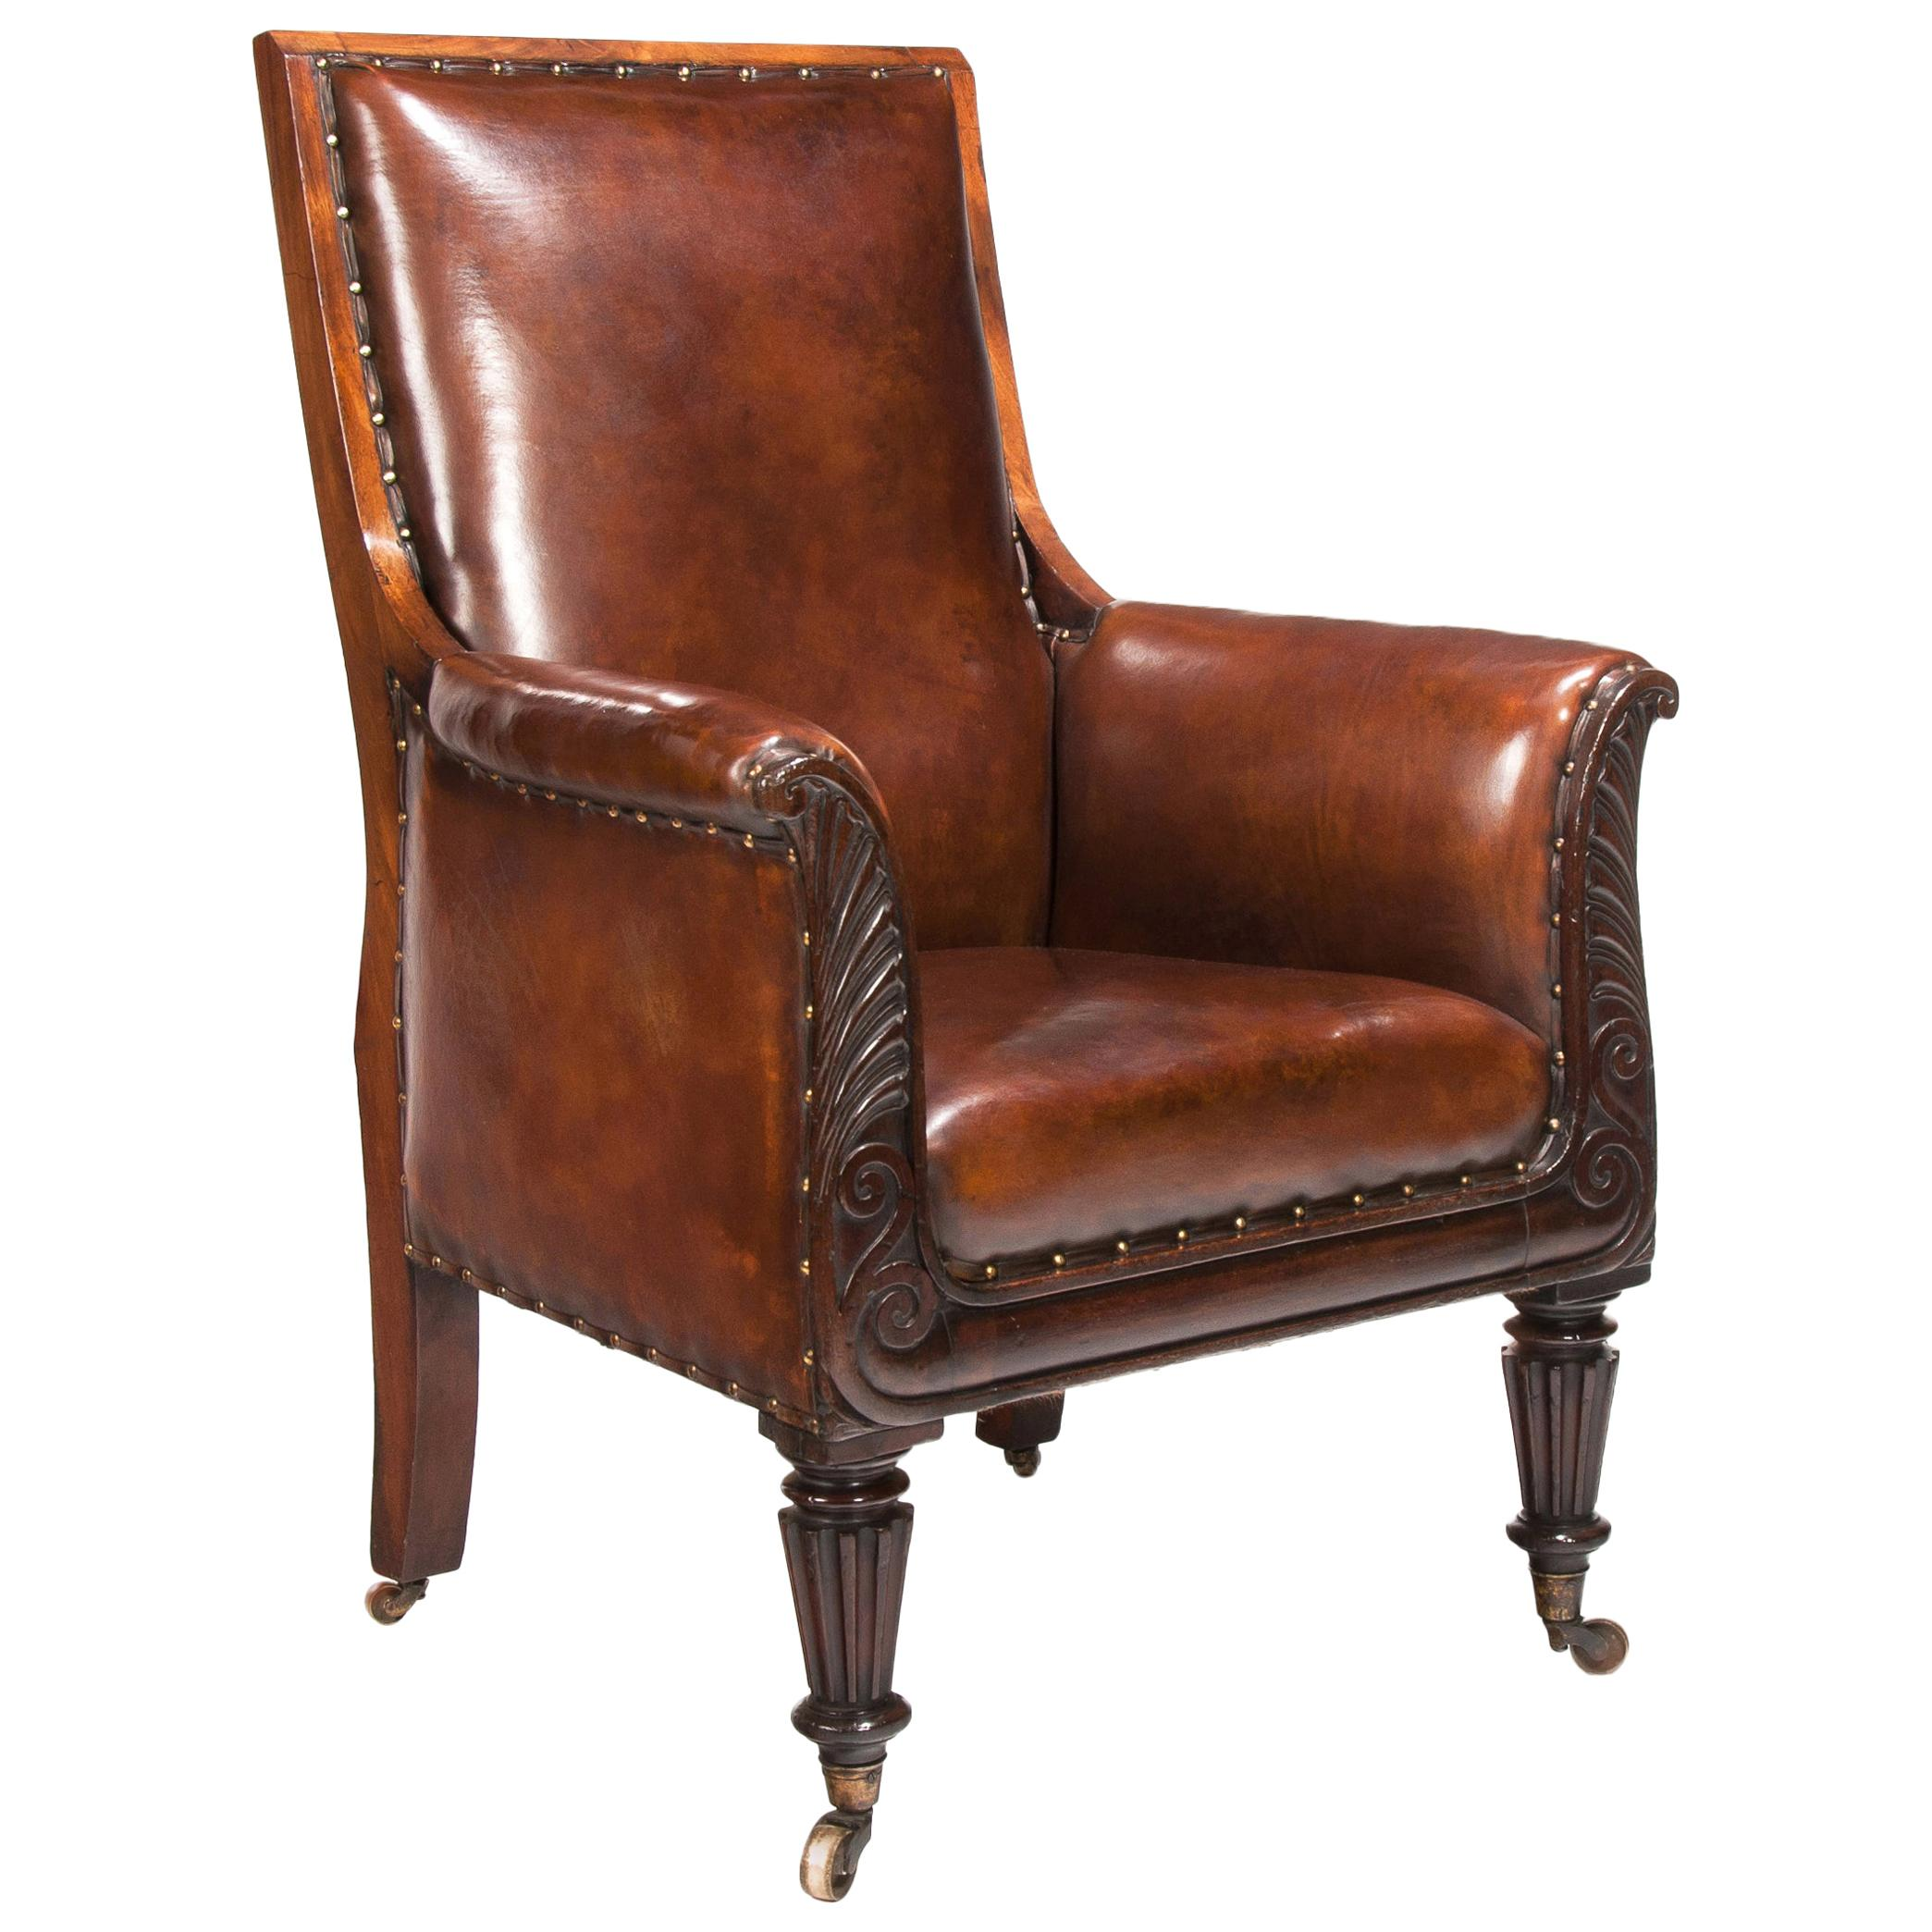 19th Century Mahogany Armchair of Neoclassical Design with Leather Upholstery